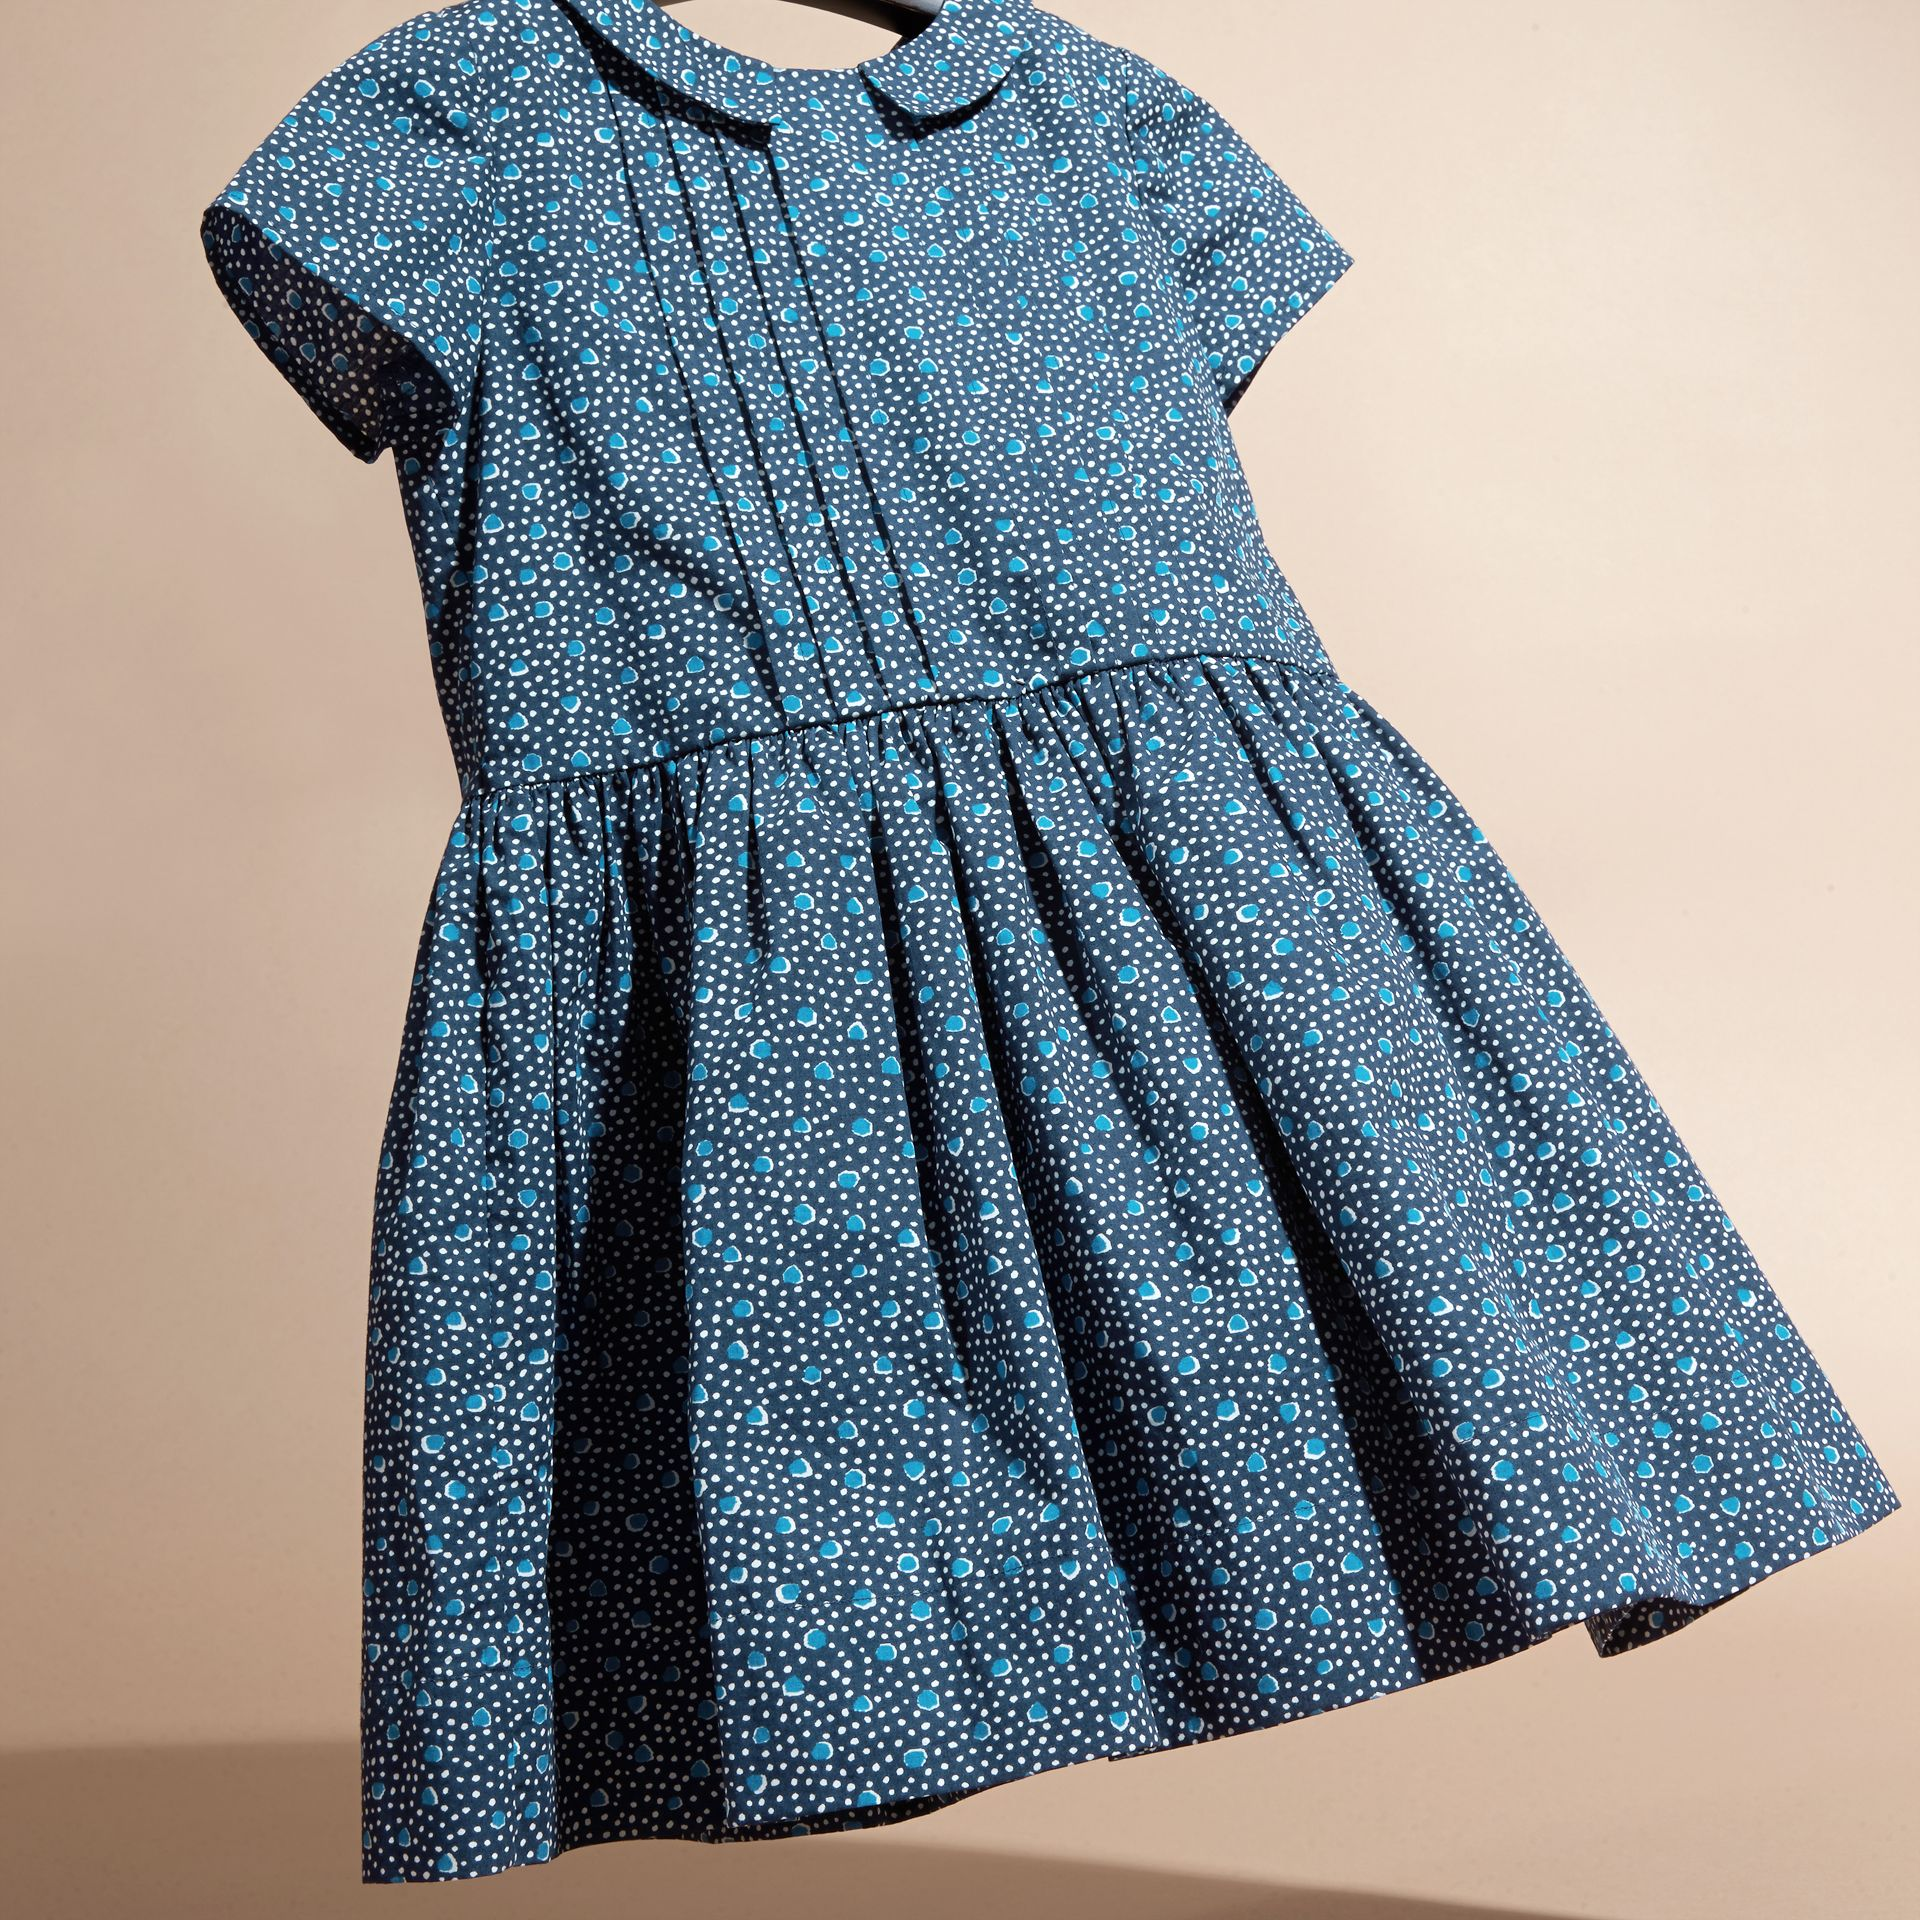 Pale navy Pleat Detail Painterly Spot Print Cotton Dress - gallery image 3